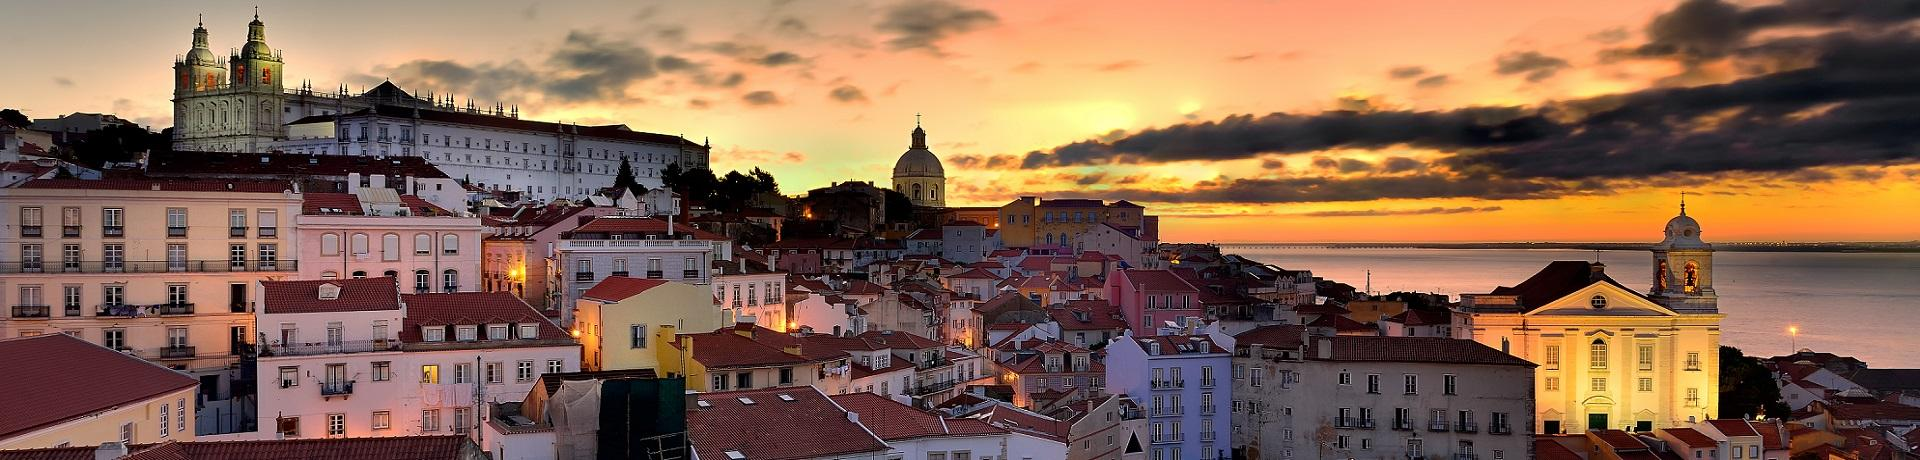 Portugal: Lissabon - Emotion